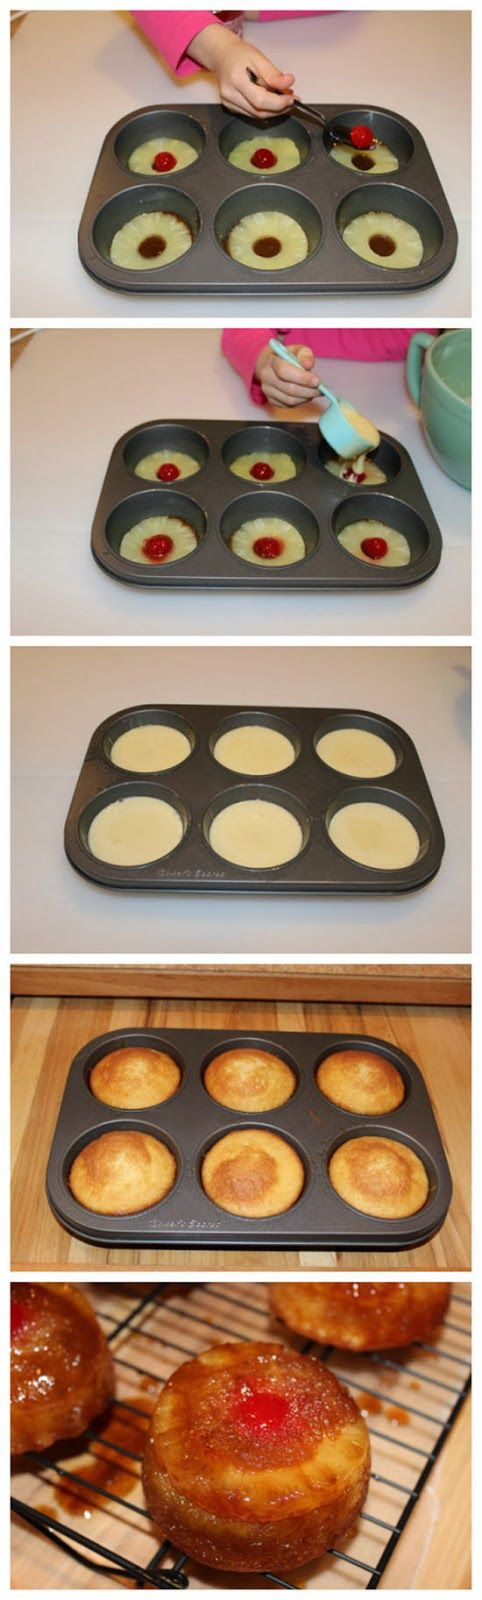 Easy Pineapple Upside Down Cake In Muffin Tins